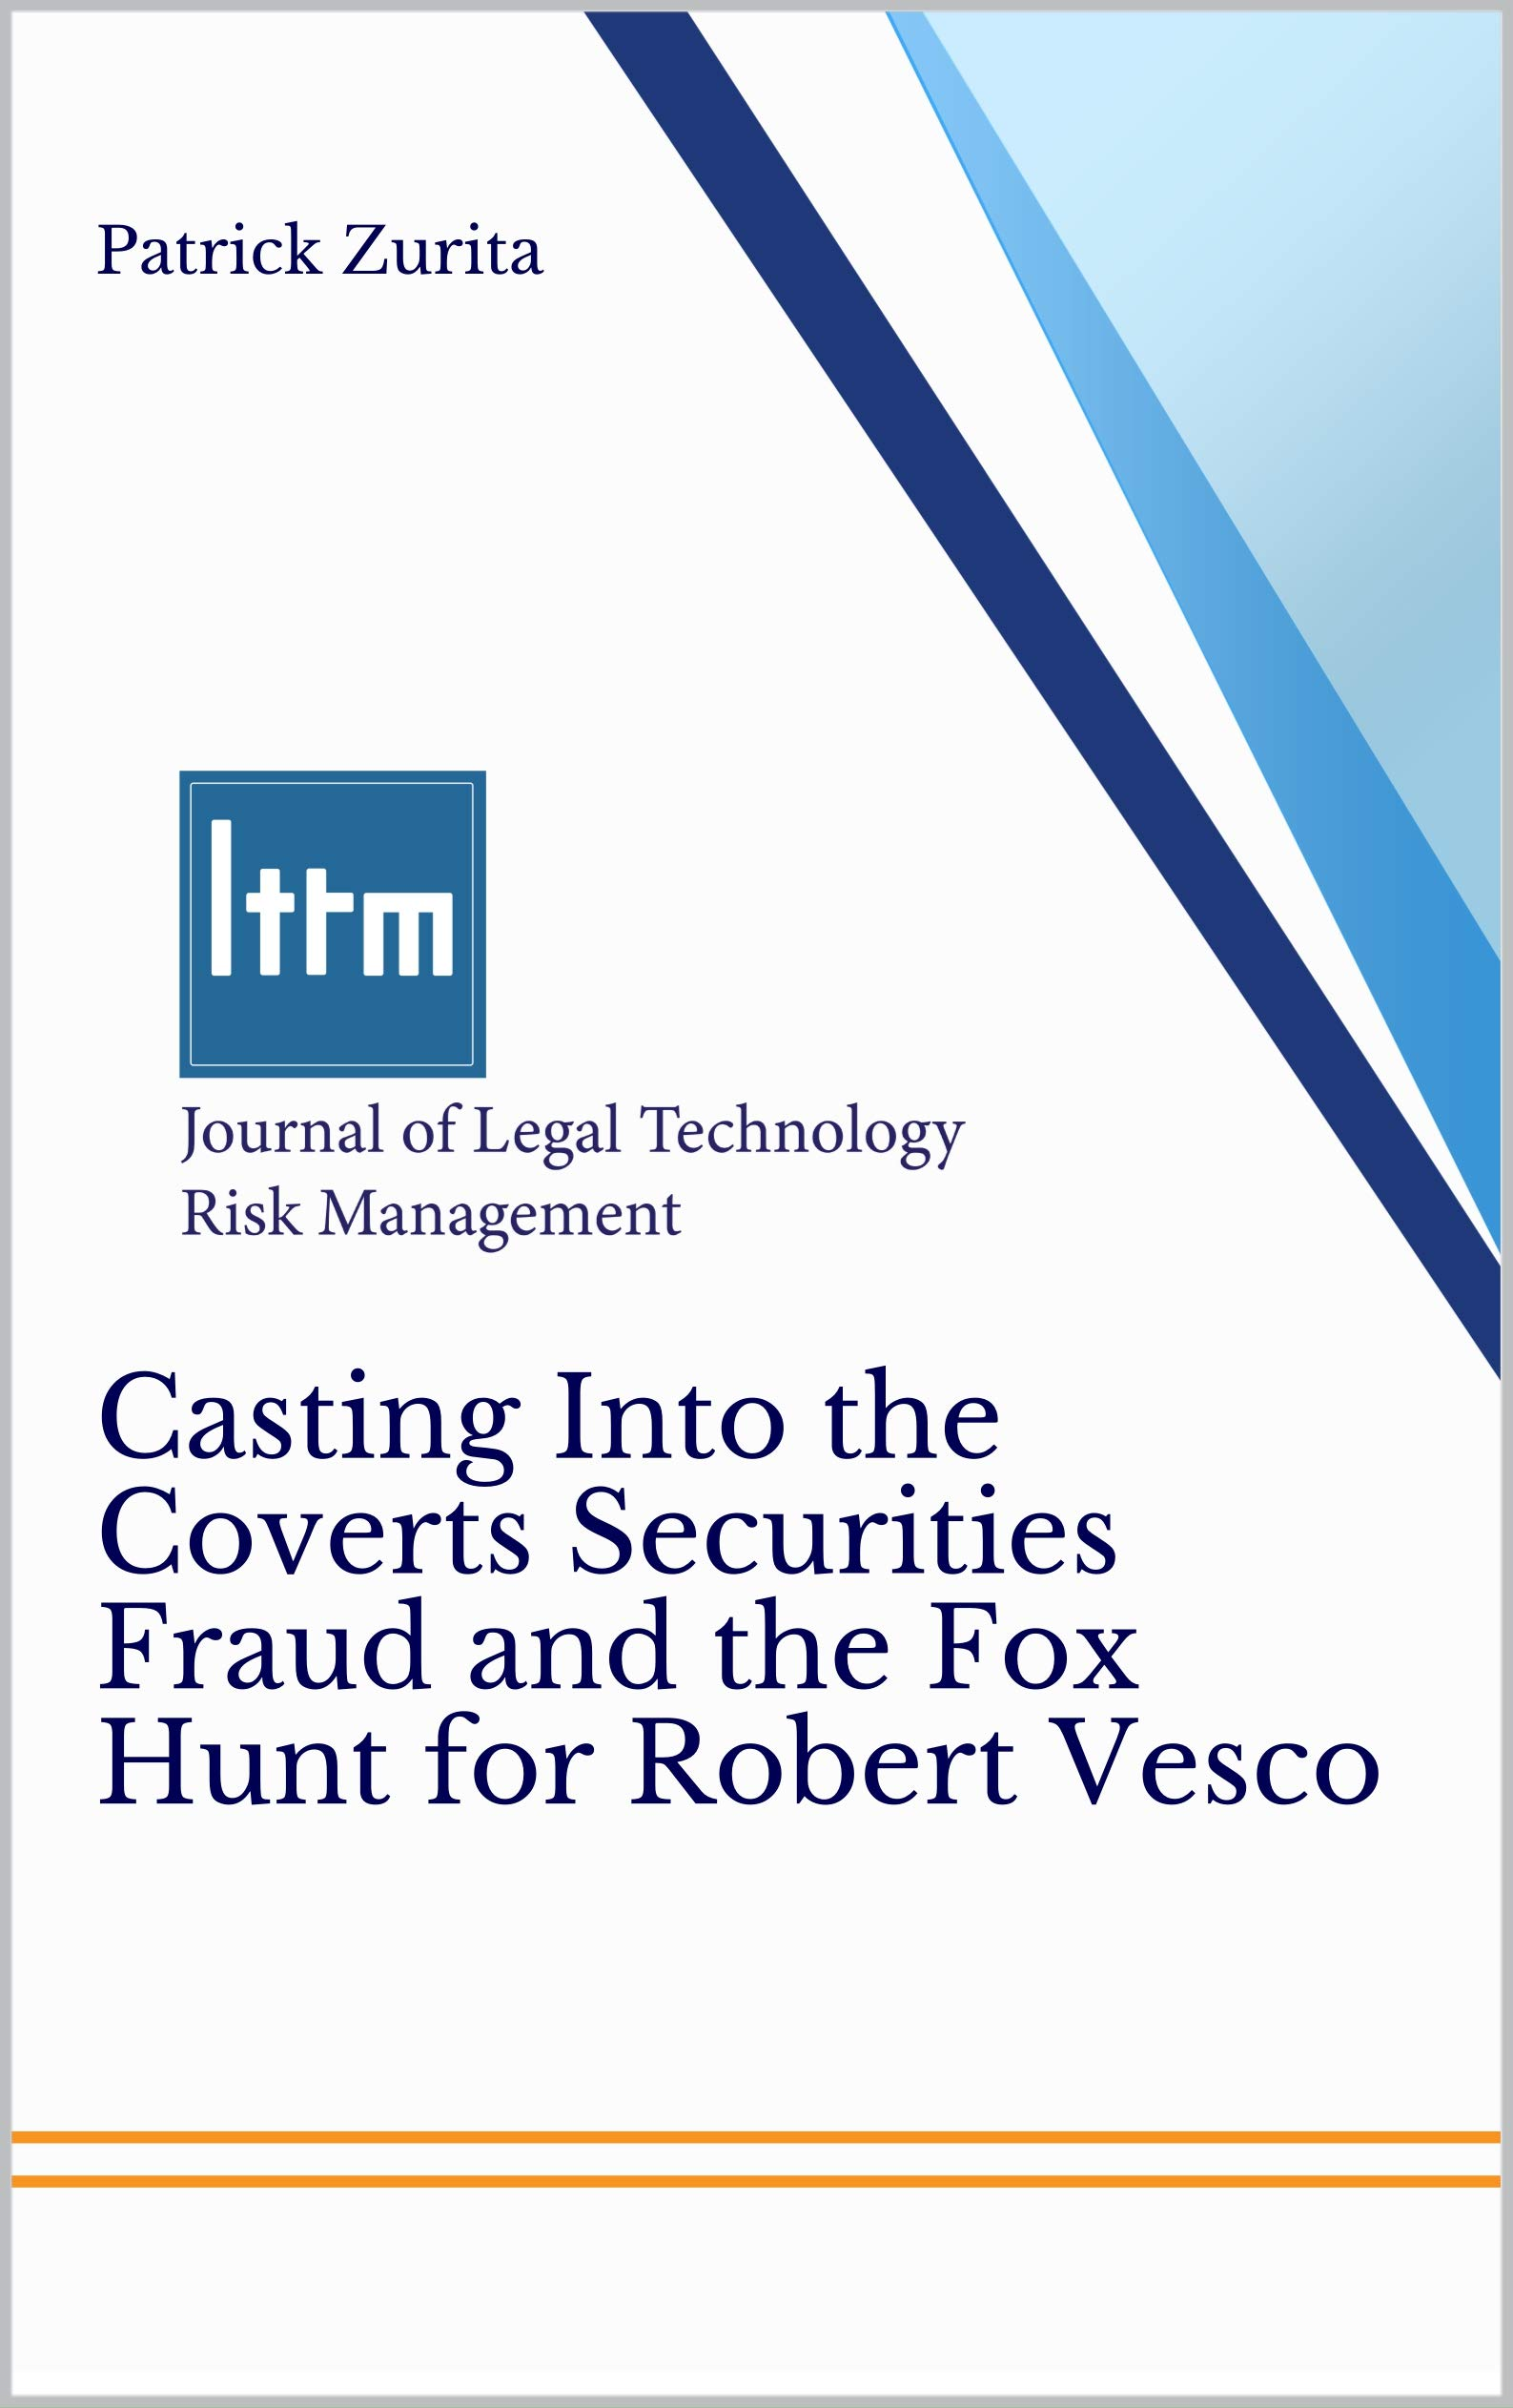 Casting Into the Coverts Securities Fraud and the Fox Hunt for Robert Vesco: Journal of Legal Technology Risk Management